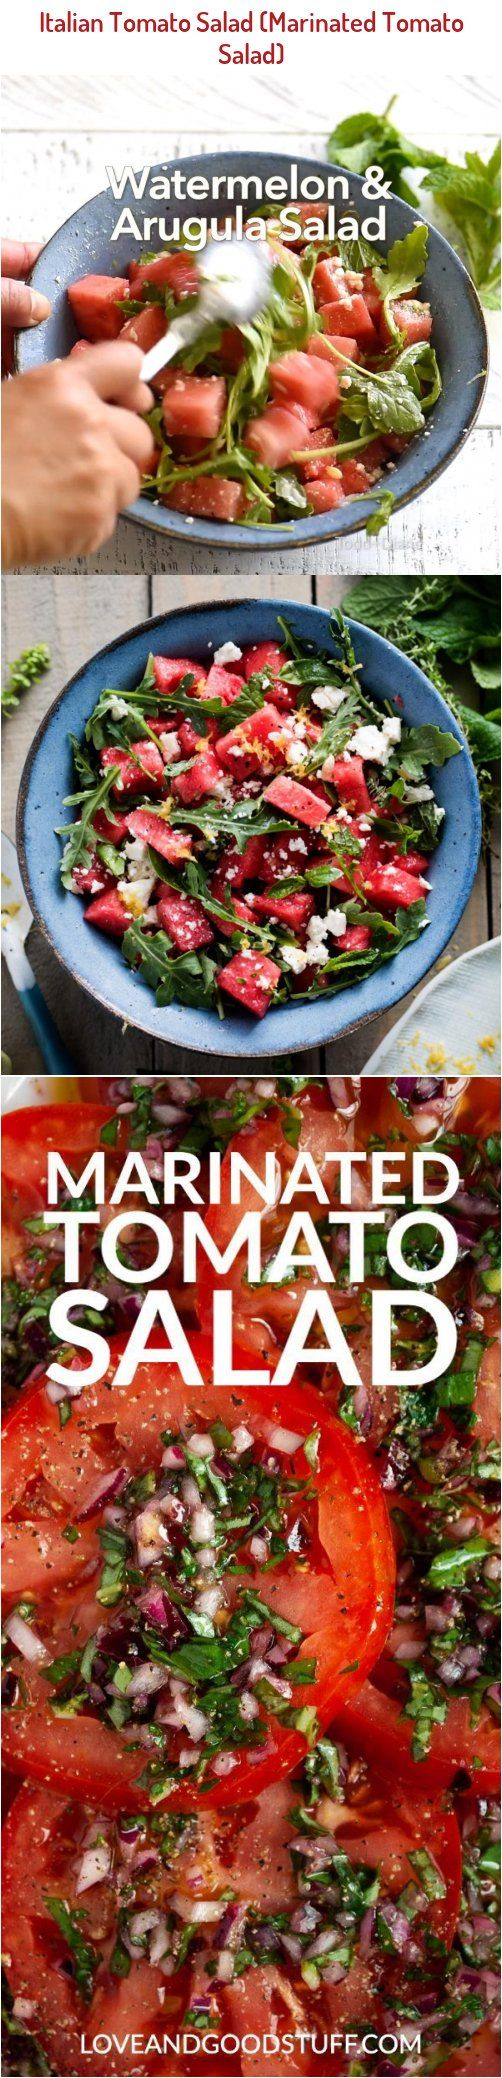 Perfectly Ripe Juicy Tomatoes Marinated In Olive Oil Red Wine Vinegar Basil And Garlic This Delicious In 2020 Marinated Tomatoes Italian Tomato Salad Salad Recipes